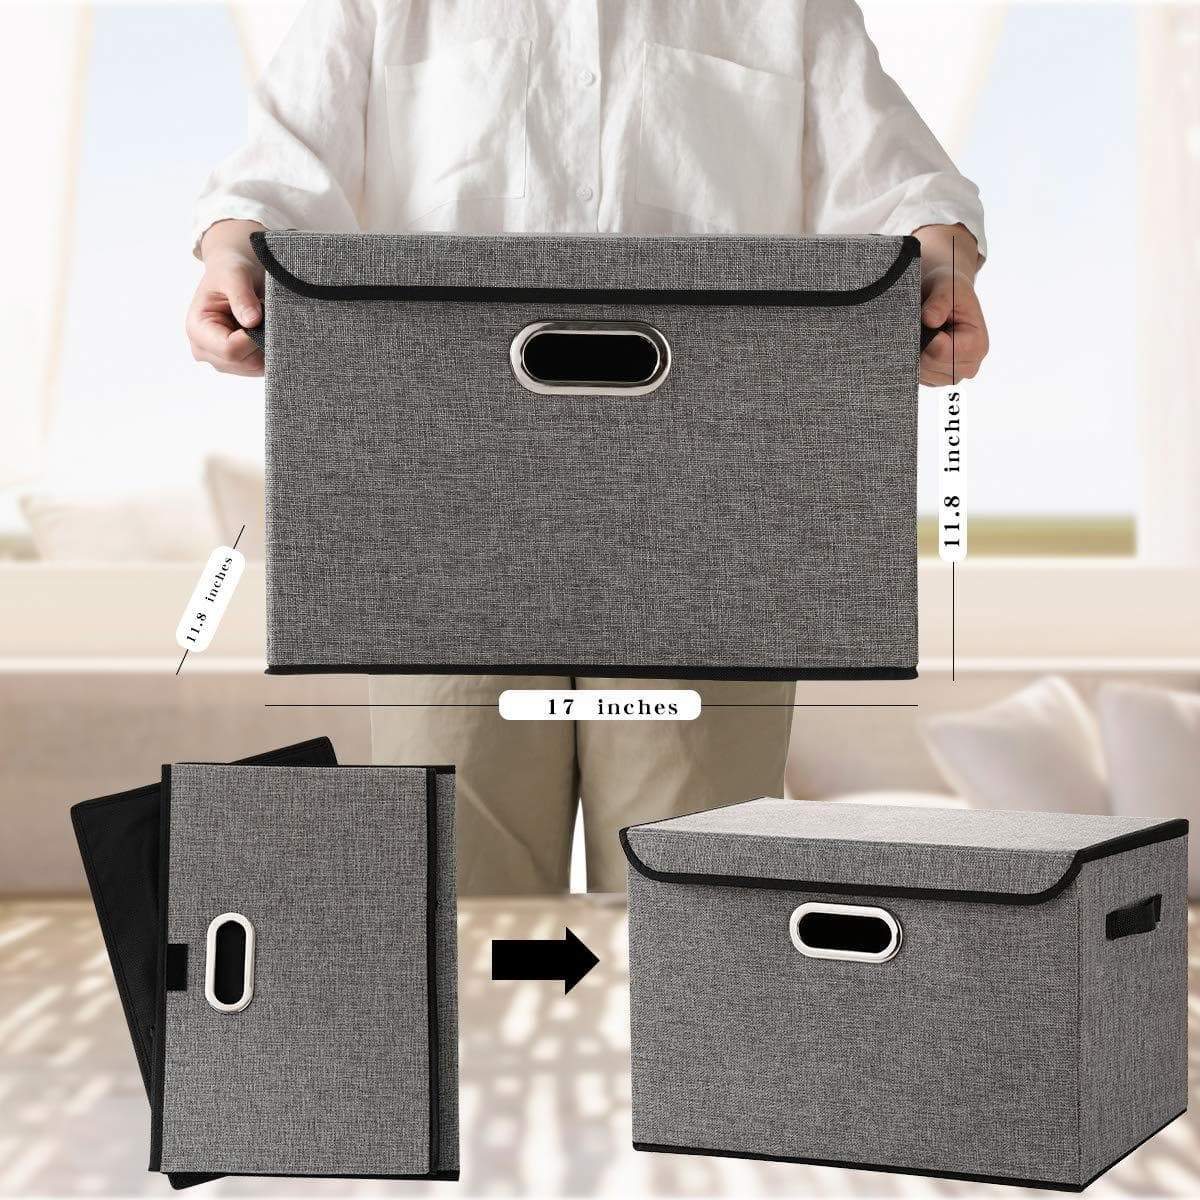 Discover large foldable storage box bin with lids2 pack no smell stackable linen fabric storage container organizers with handles for home bedroom closet nursery office gray color